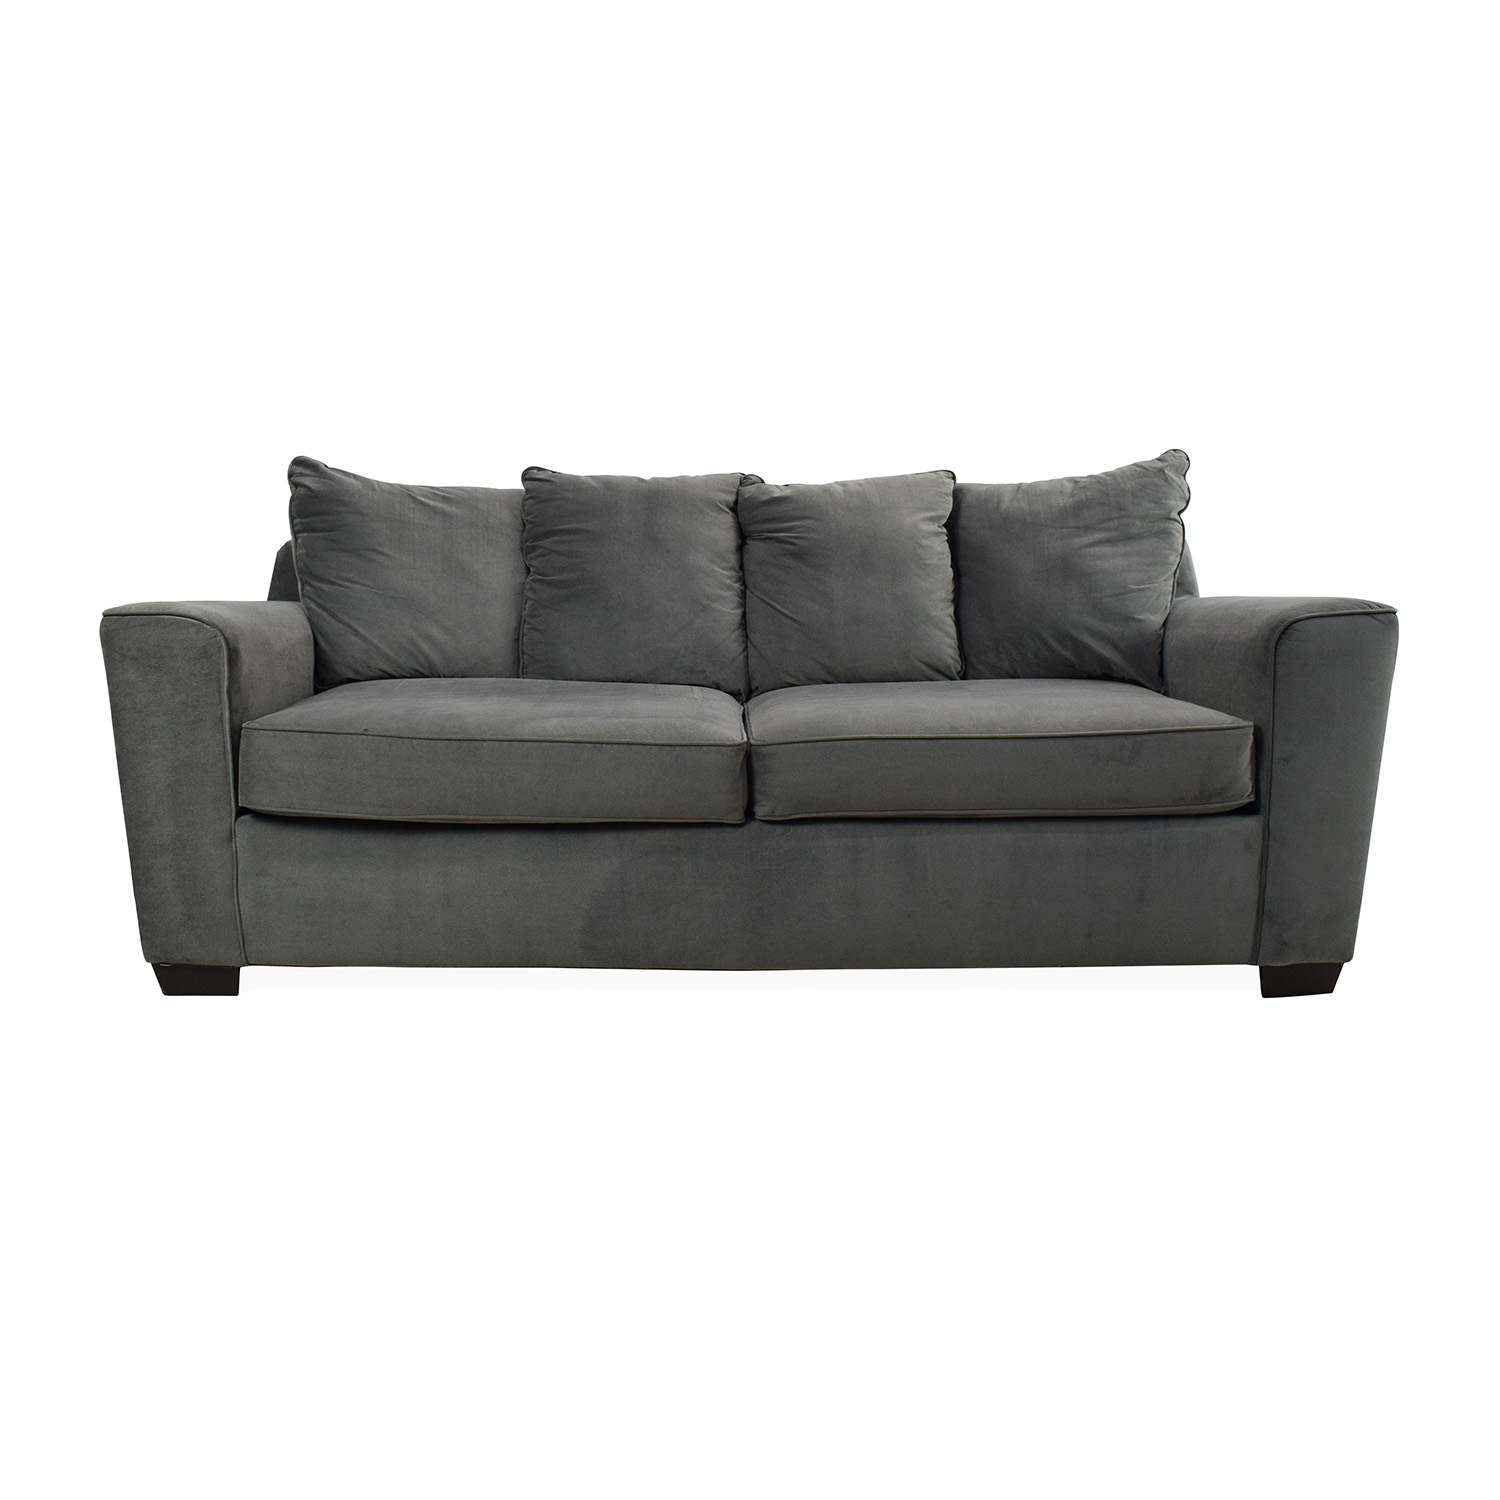 Buy Jennifer Convertibles Plush Sofa Jennifer Convertibles